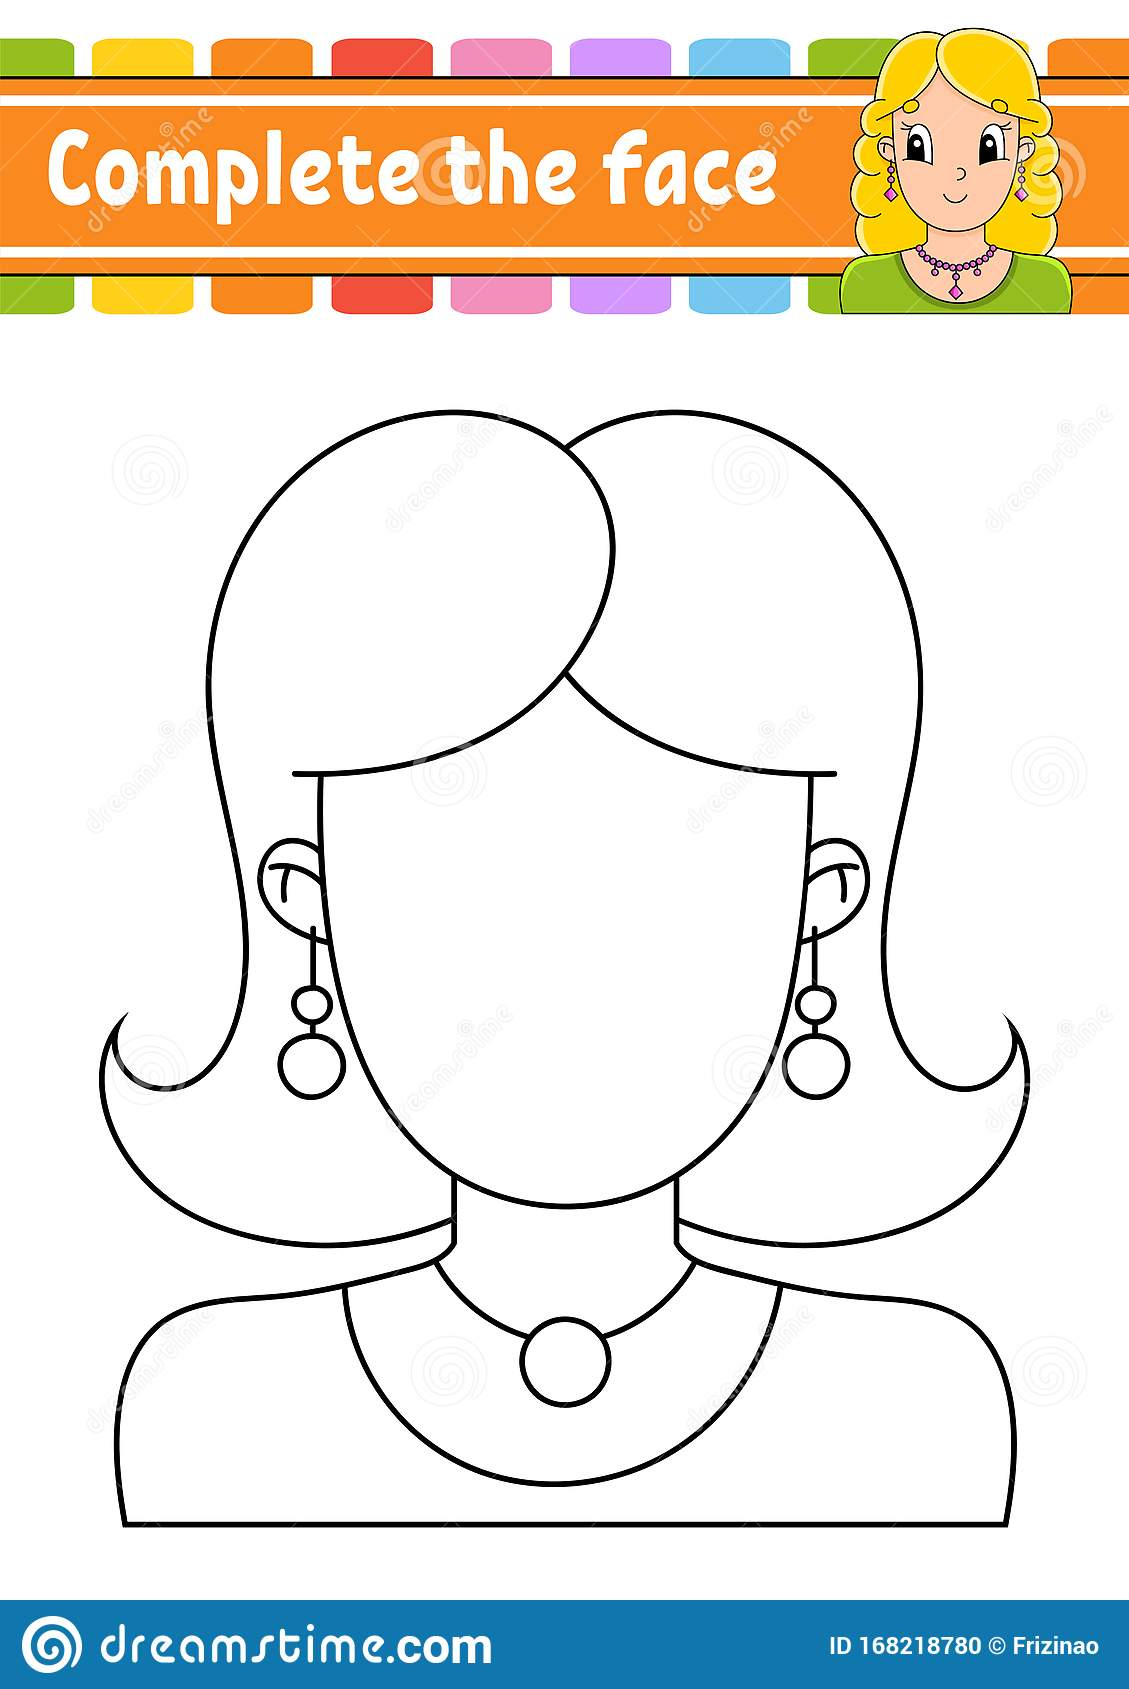 Worksheet Complete The Face Coloring Book For Kids